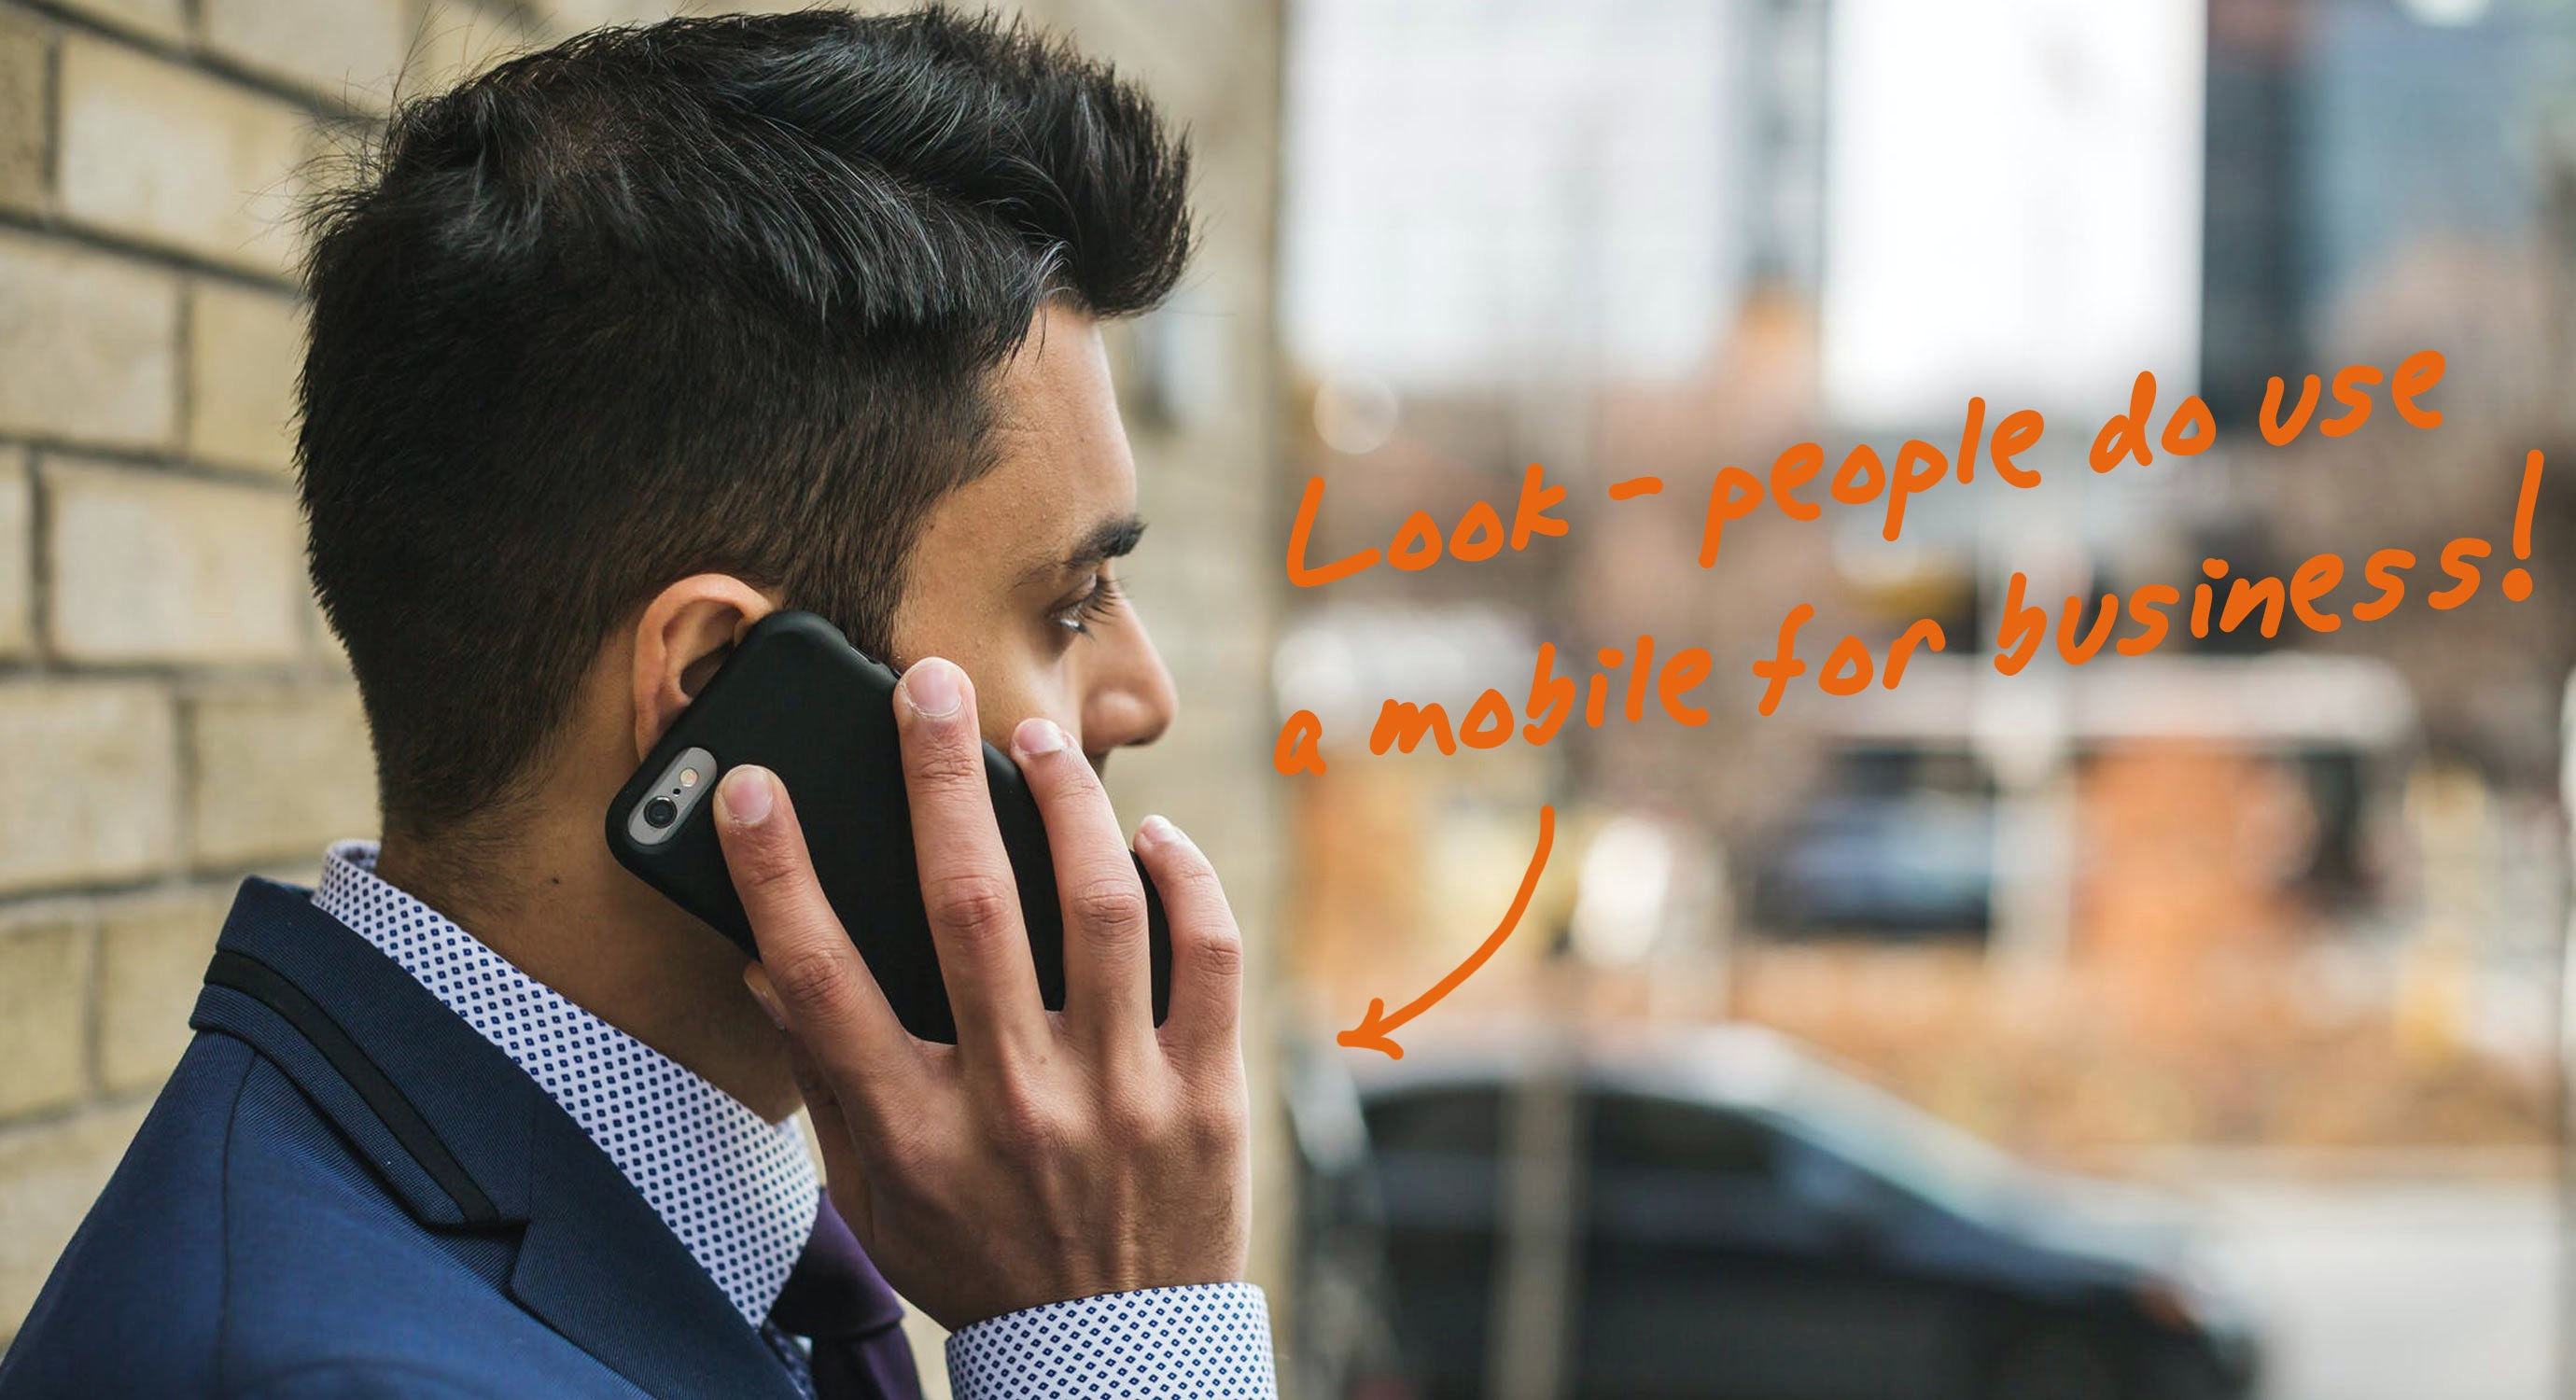 executive on a mobile phone